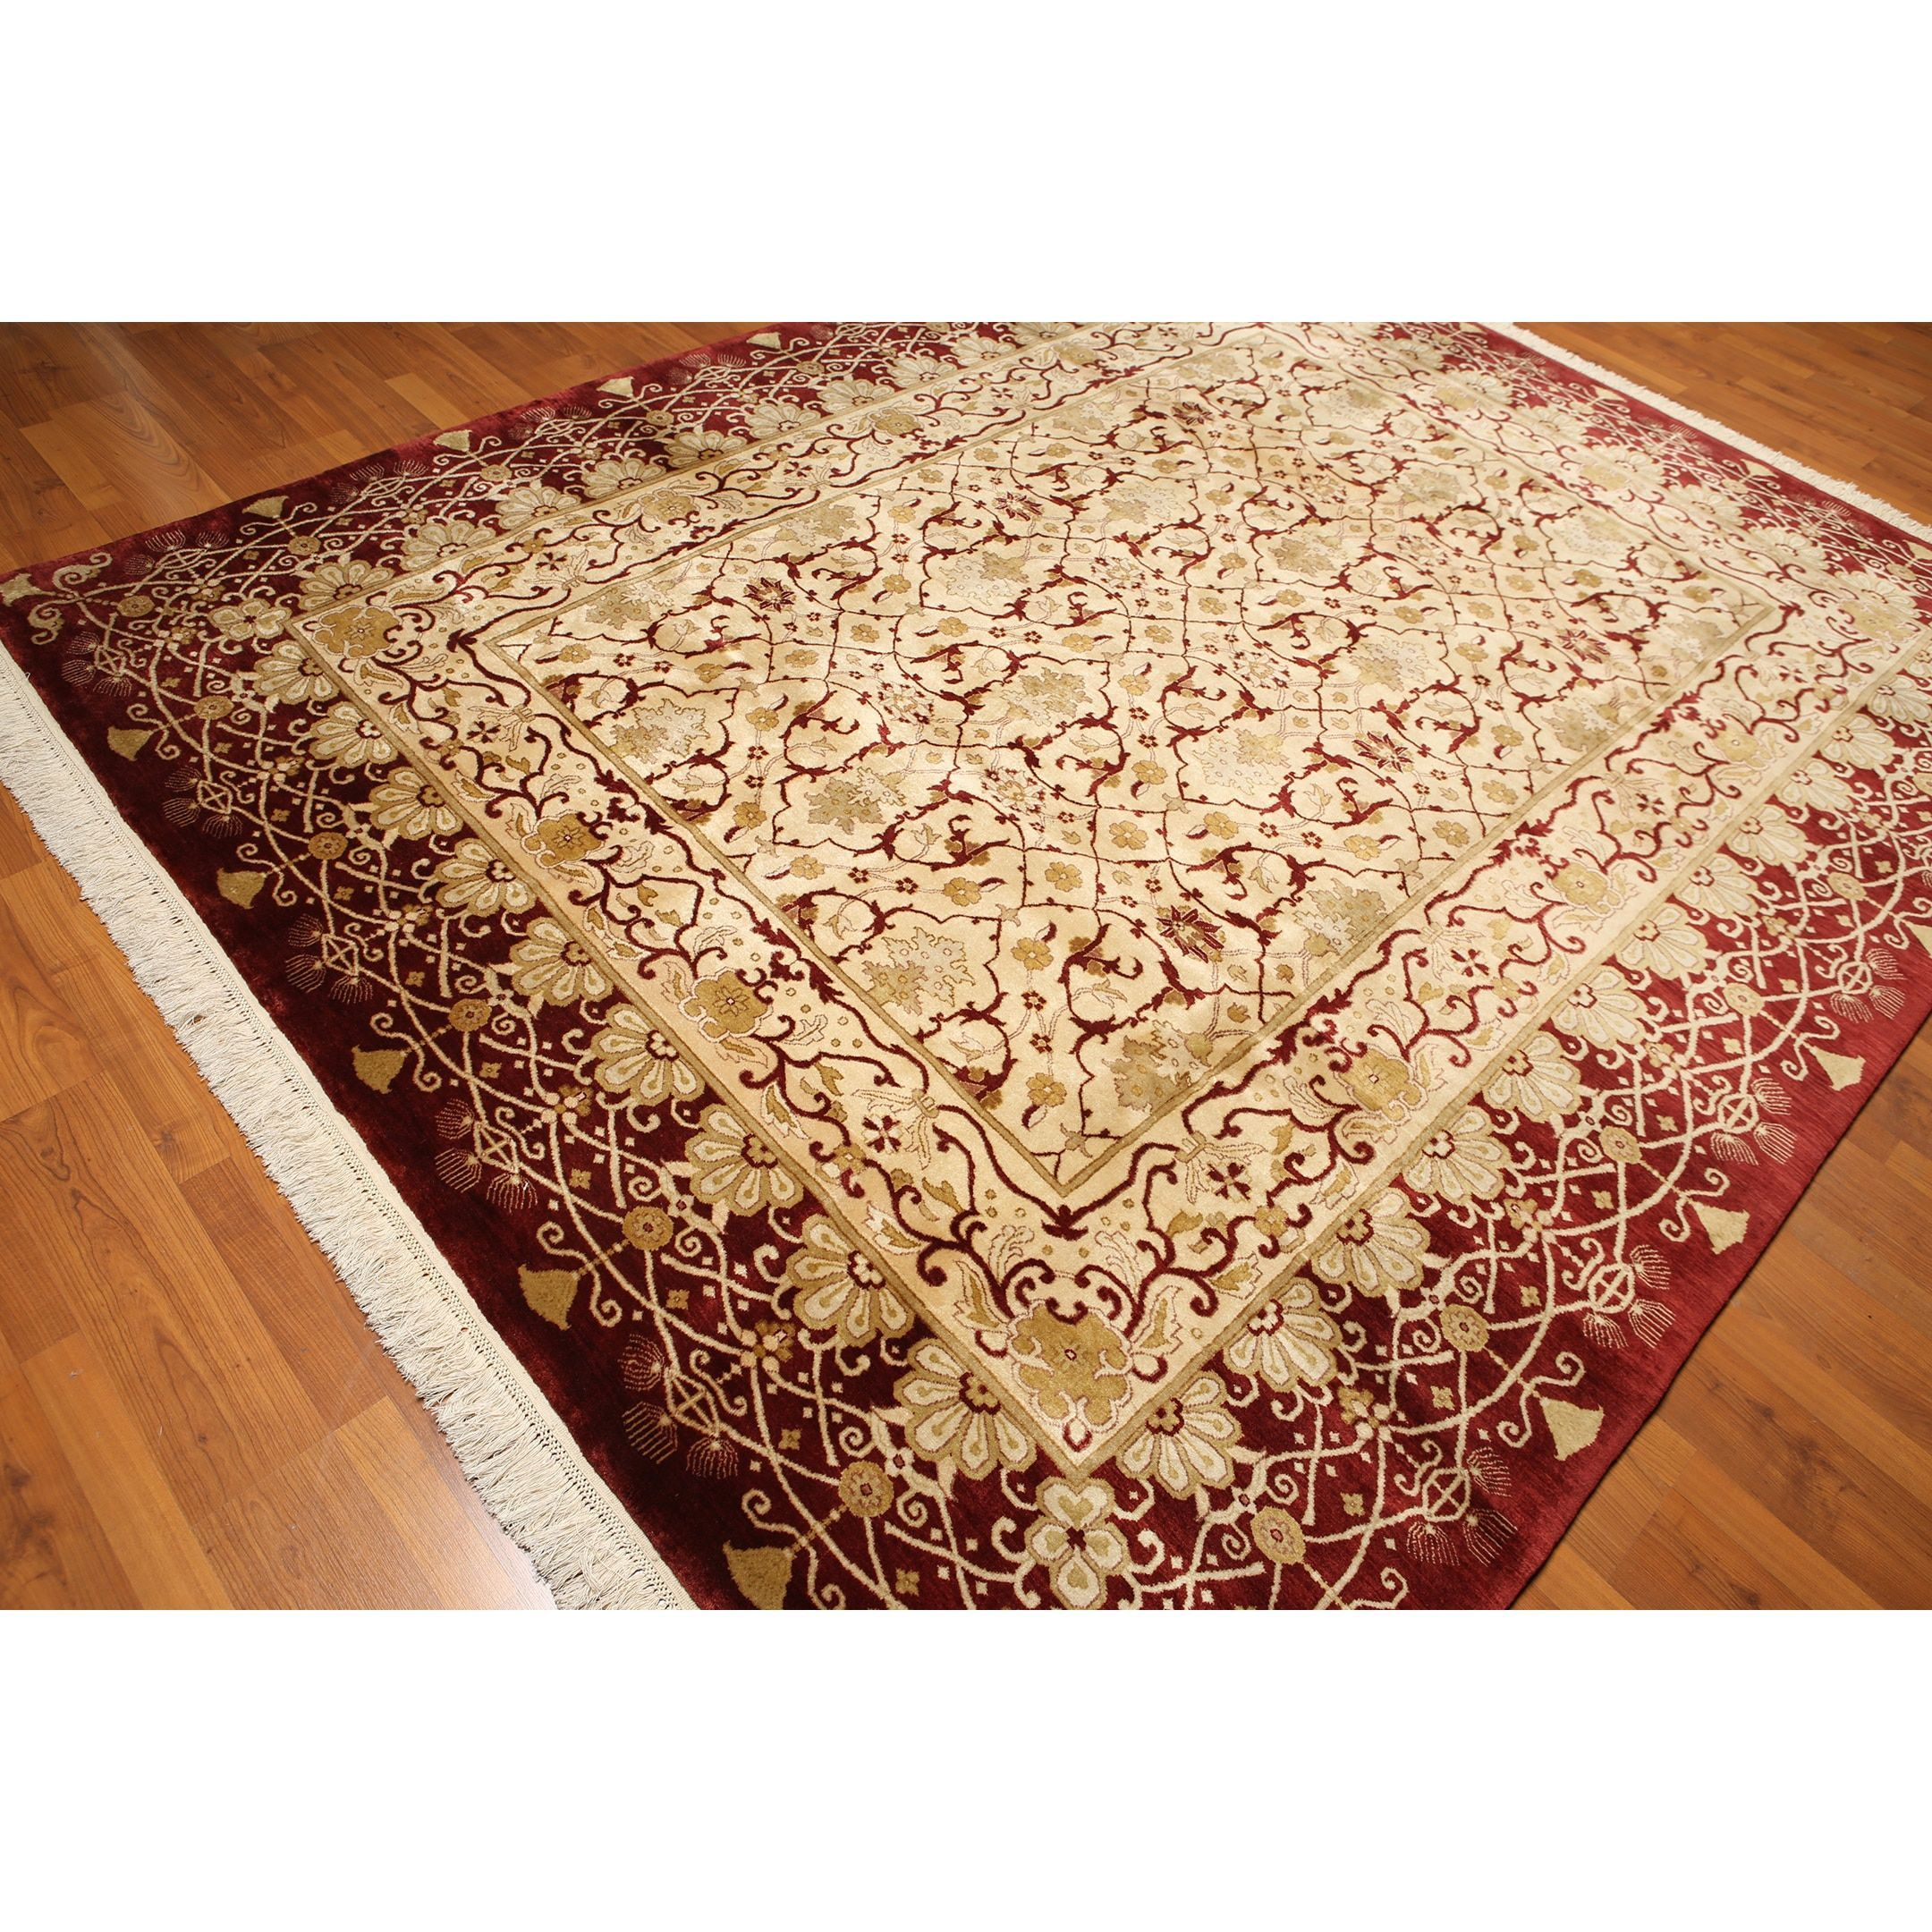 Hand Knotted Indian Beige And Burgundy Wool Area Rug 8 X 10